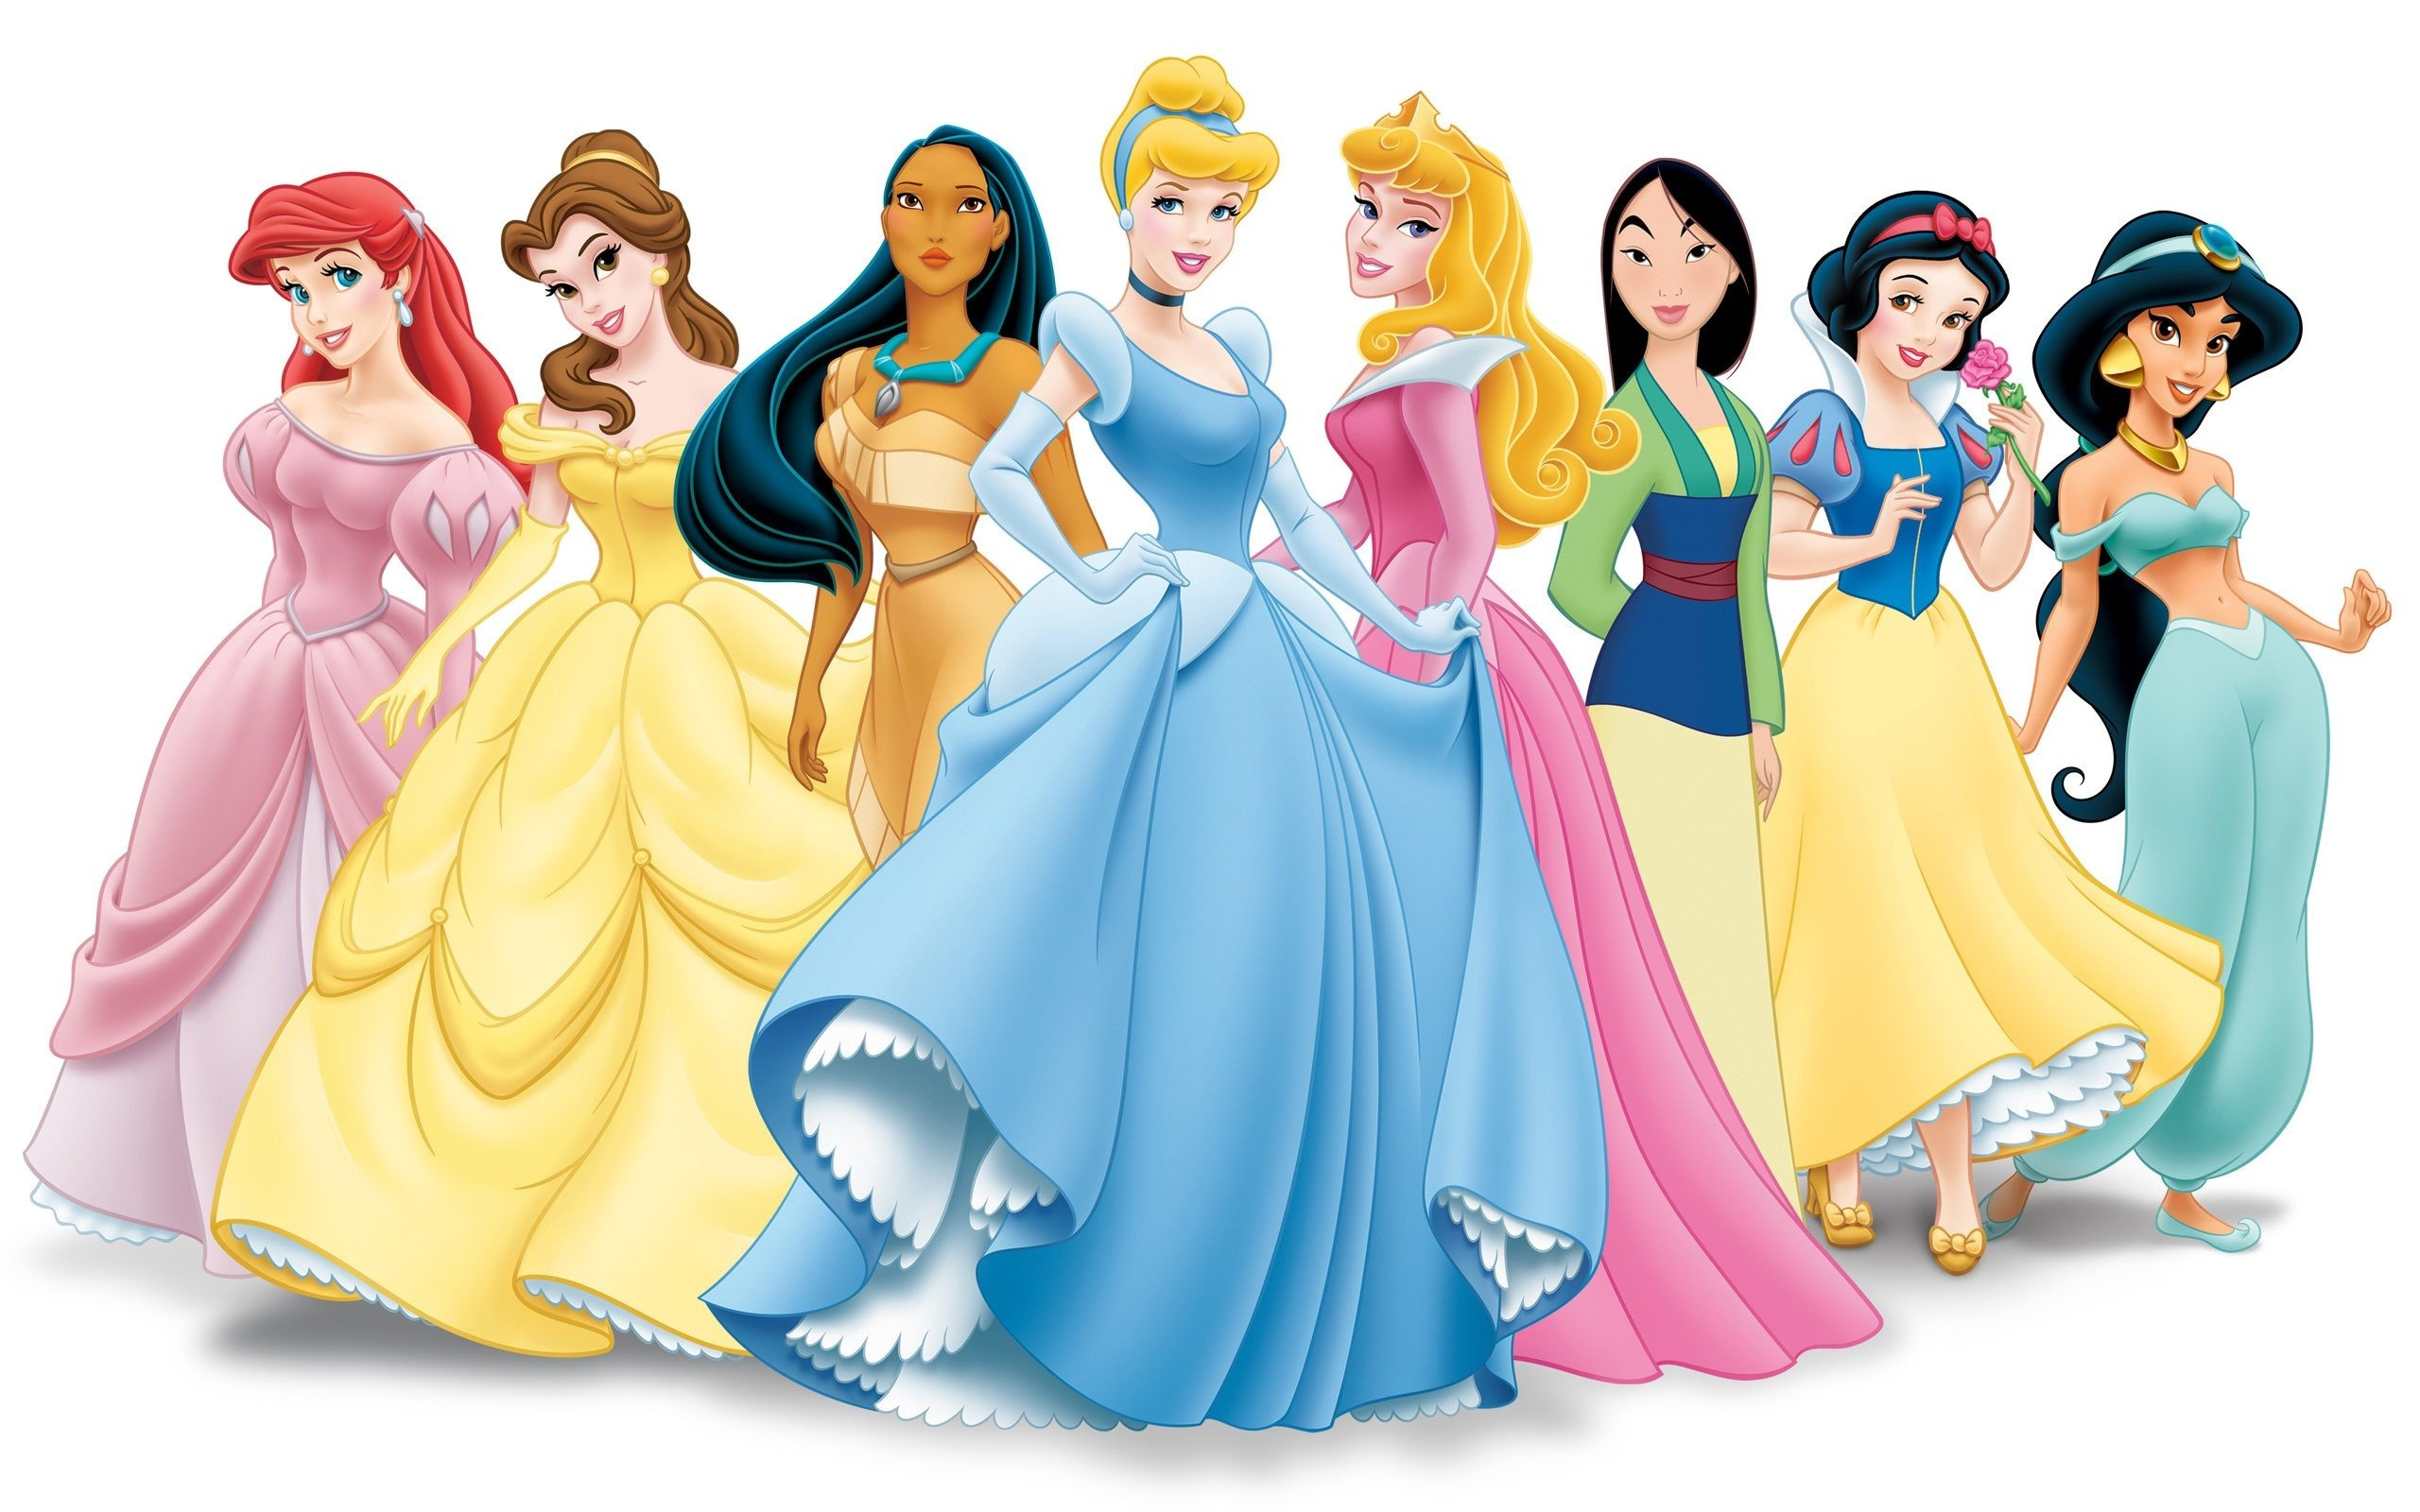 2560x1600 Disney Princess Wallpaper For the Bean